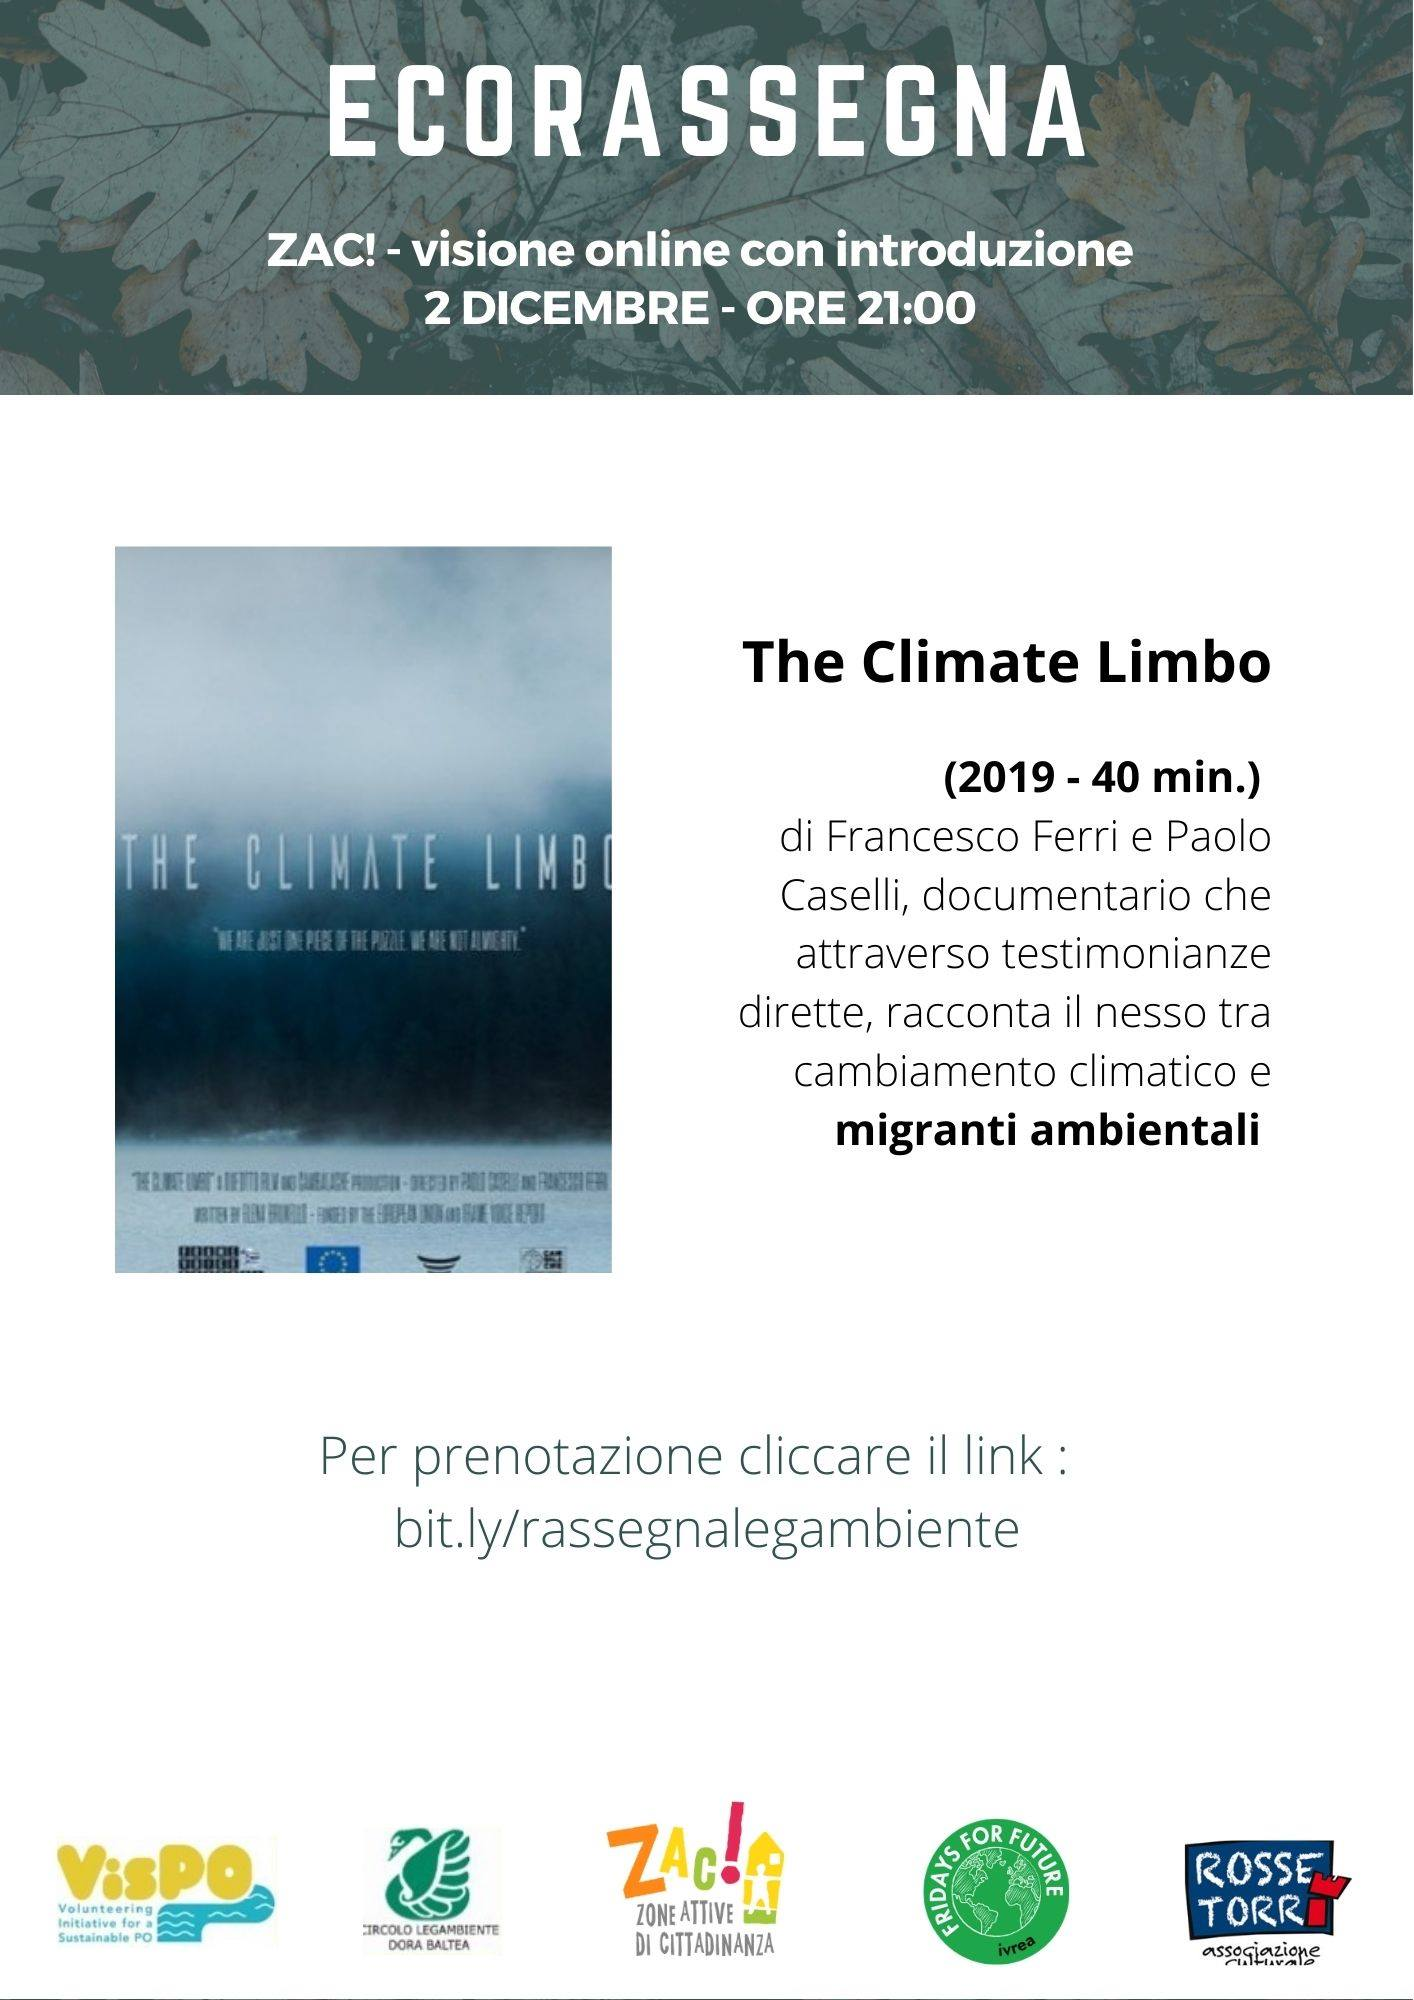 The climate limbo